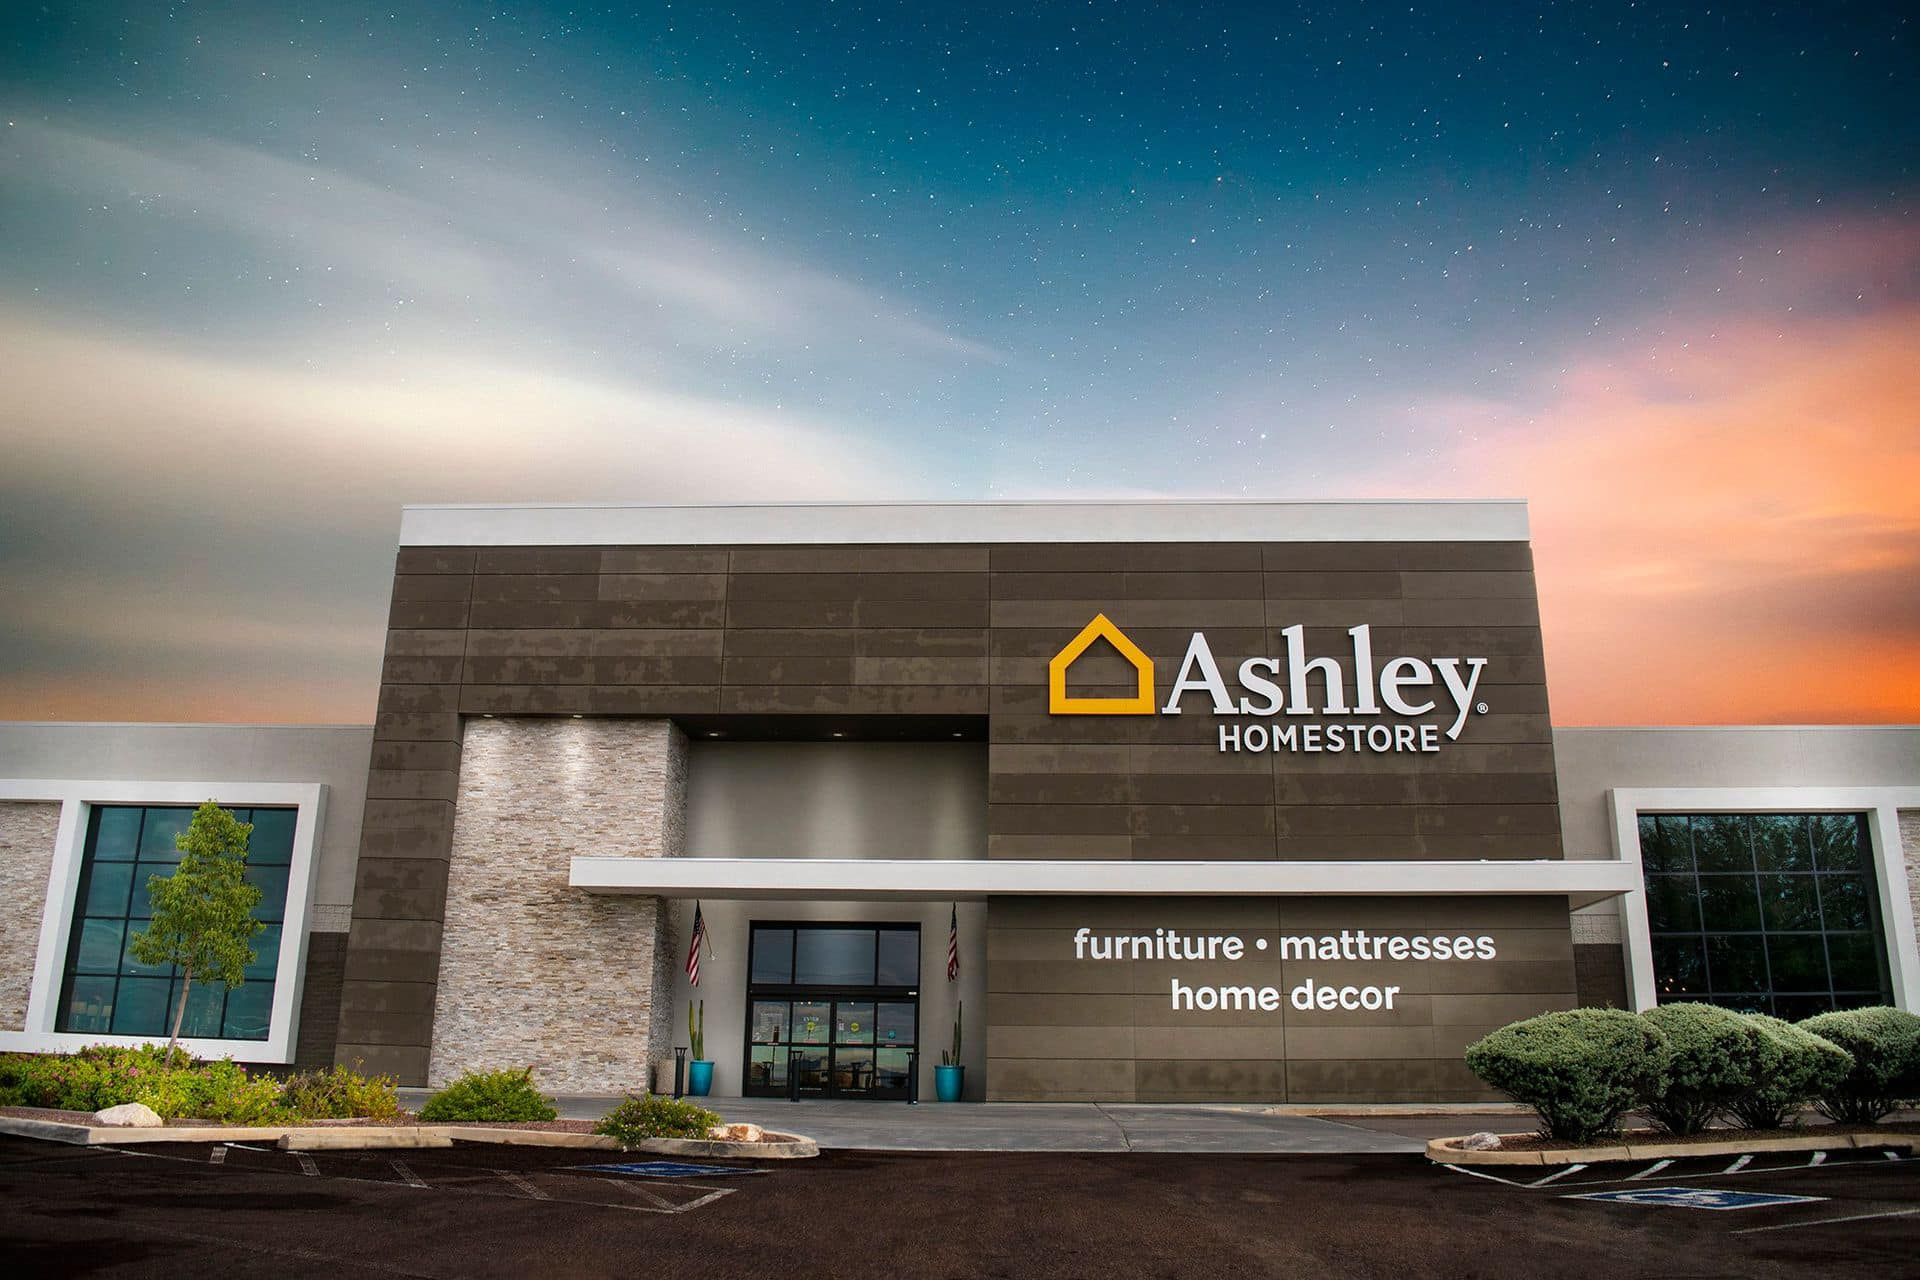 Ashley Furniture Pre Black Friday Sales Furniture And Mattress Store In Tucson Az Ashley Homestore